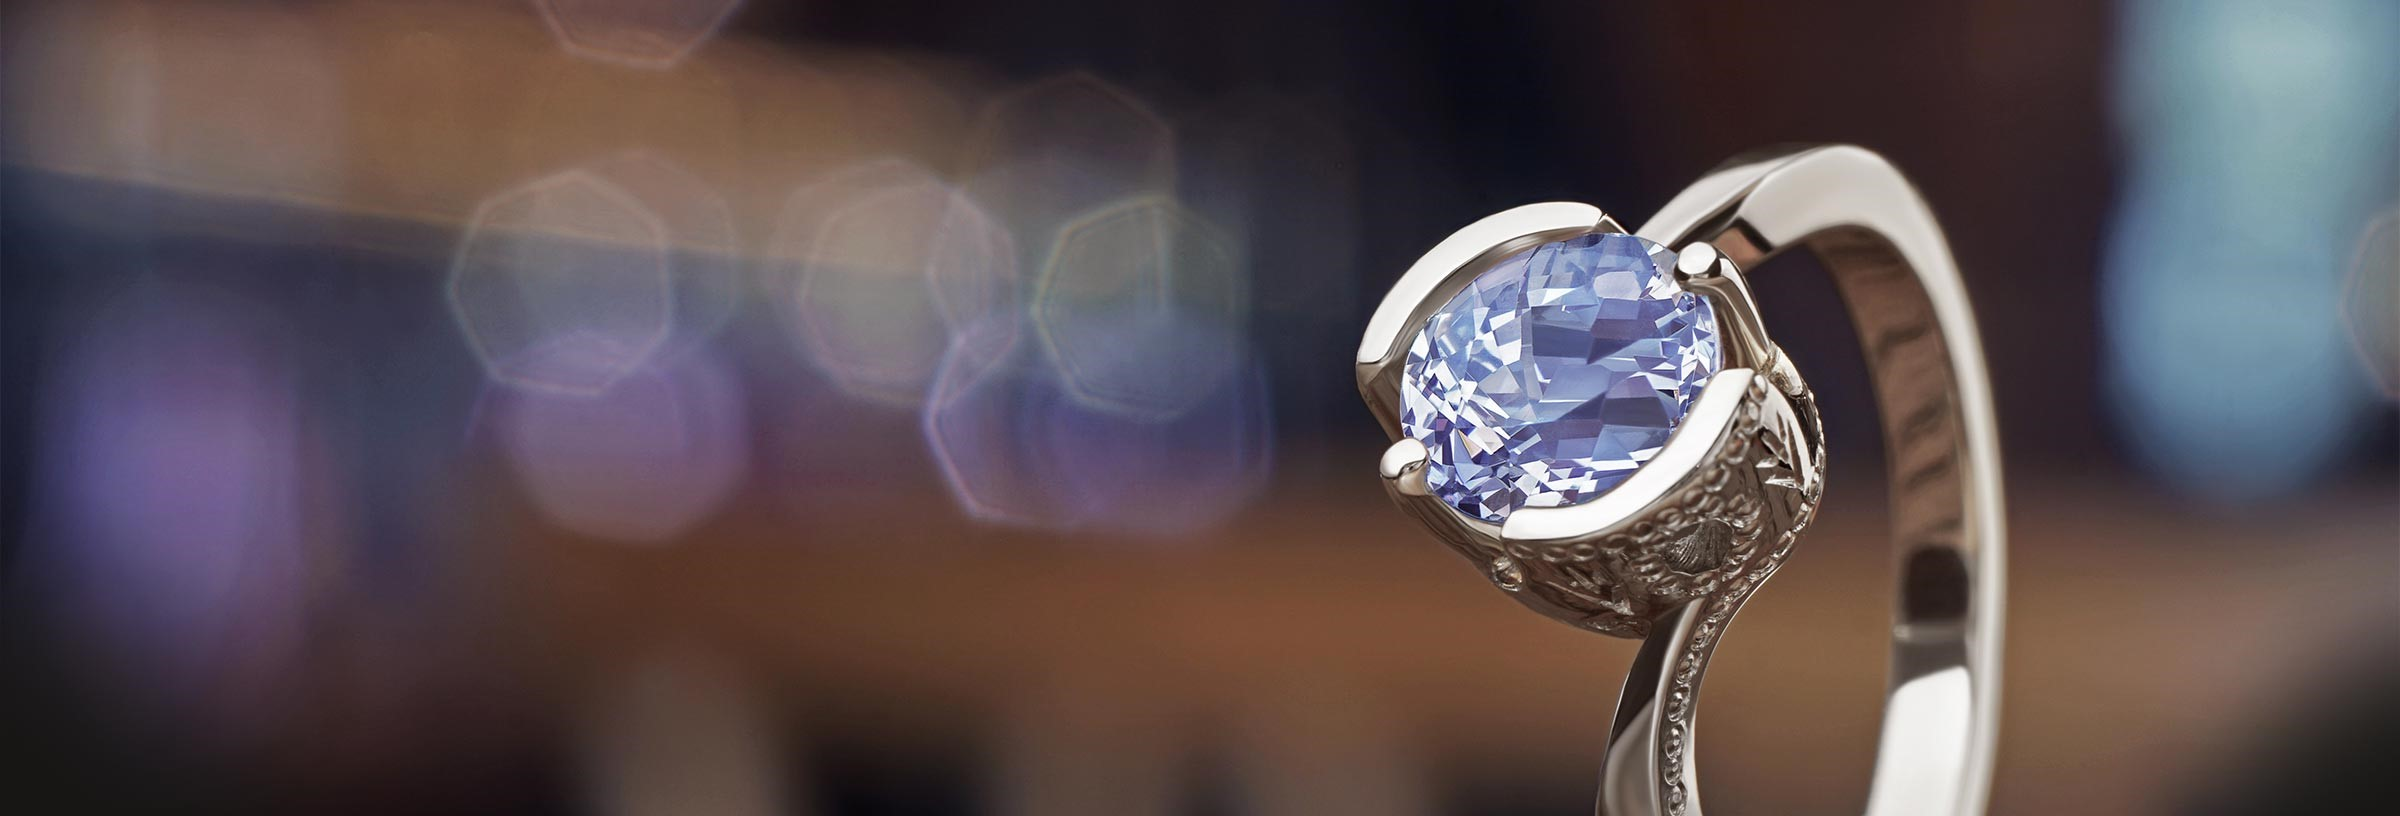 Gemstone Matters – Standout Rings For Your Engagement